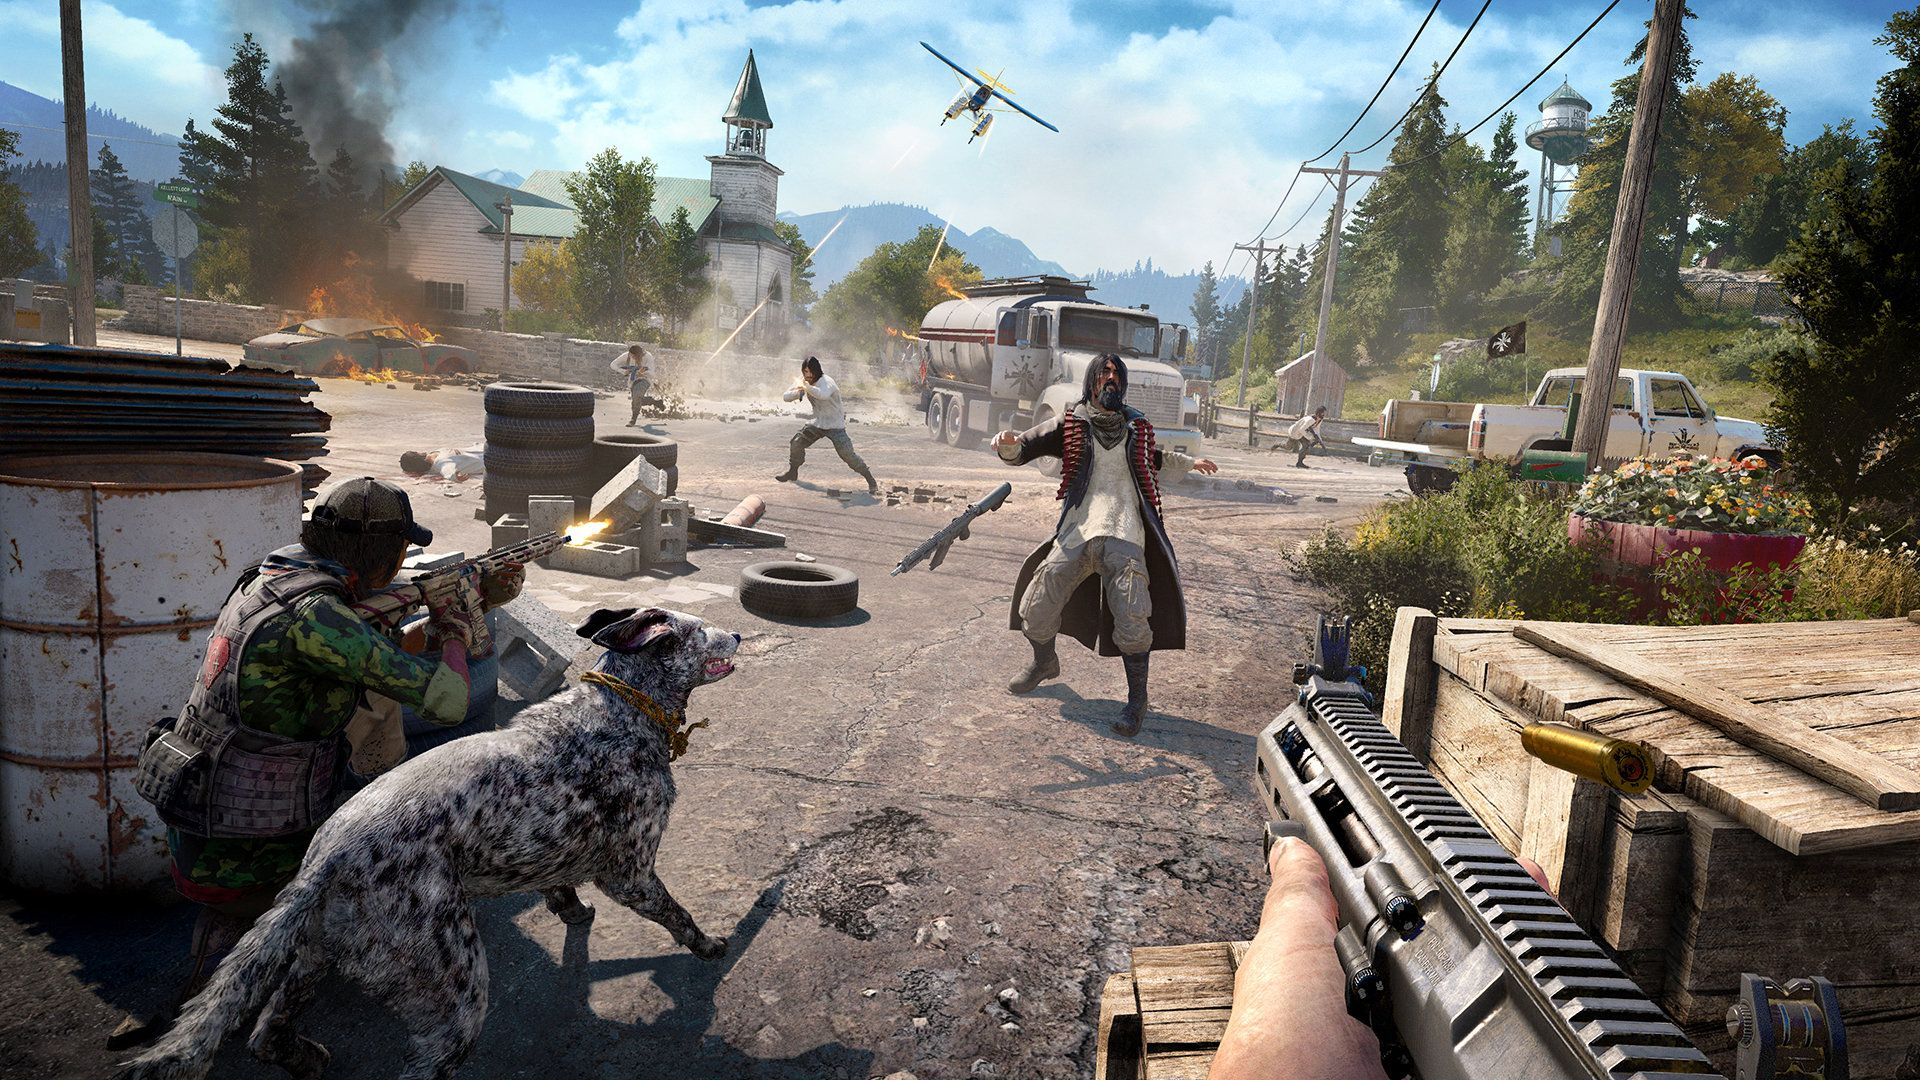 FAR CRY 5 IN MARCH WE WILL HAVE THIS GAME I HAVE MANY